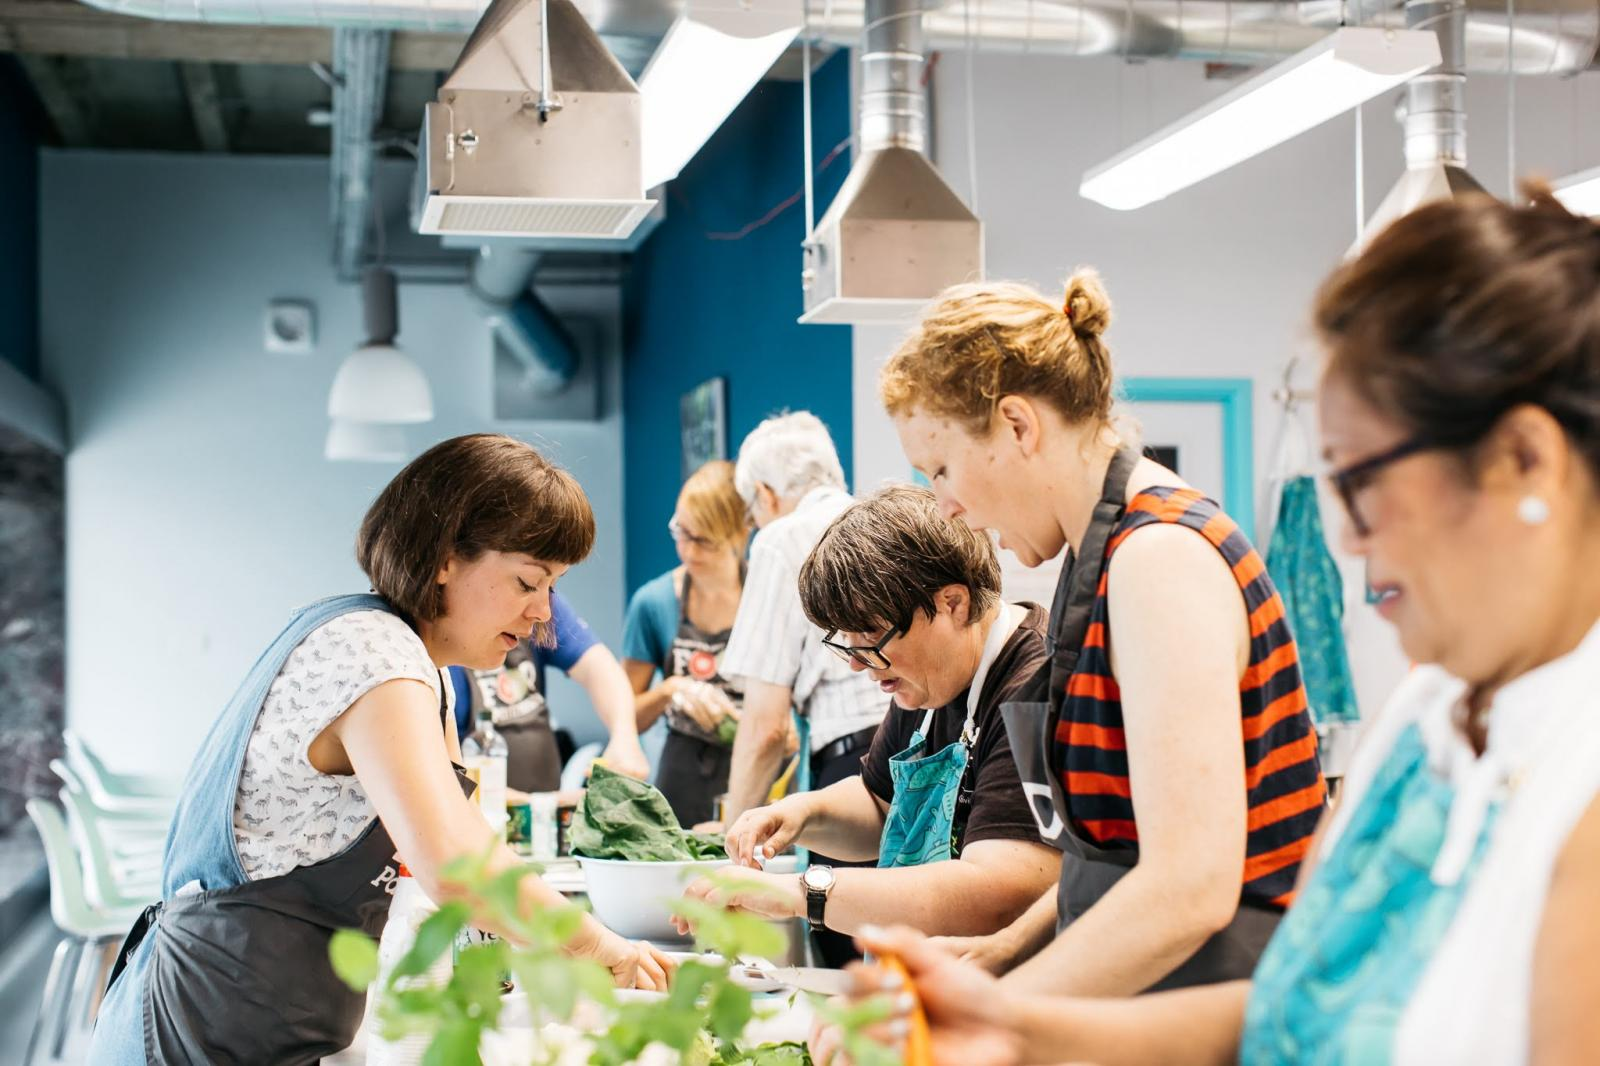 The competition will take place in July 2019 at the Community Kitchen. Credit: Emma Croman